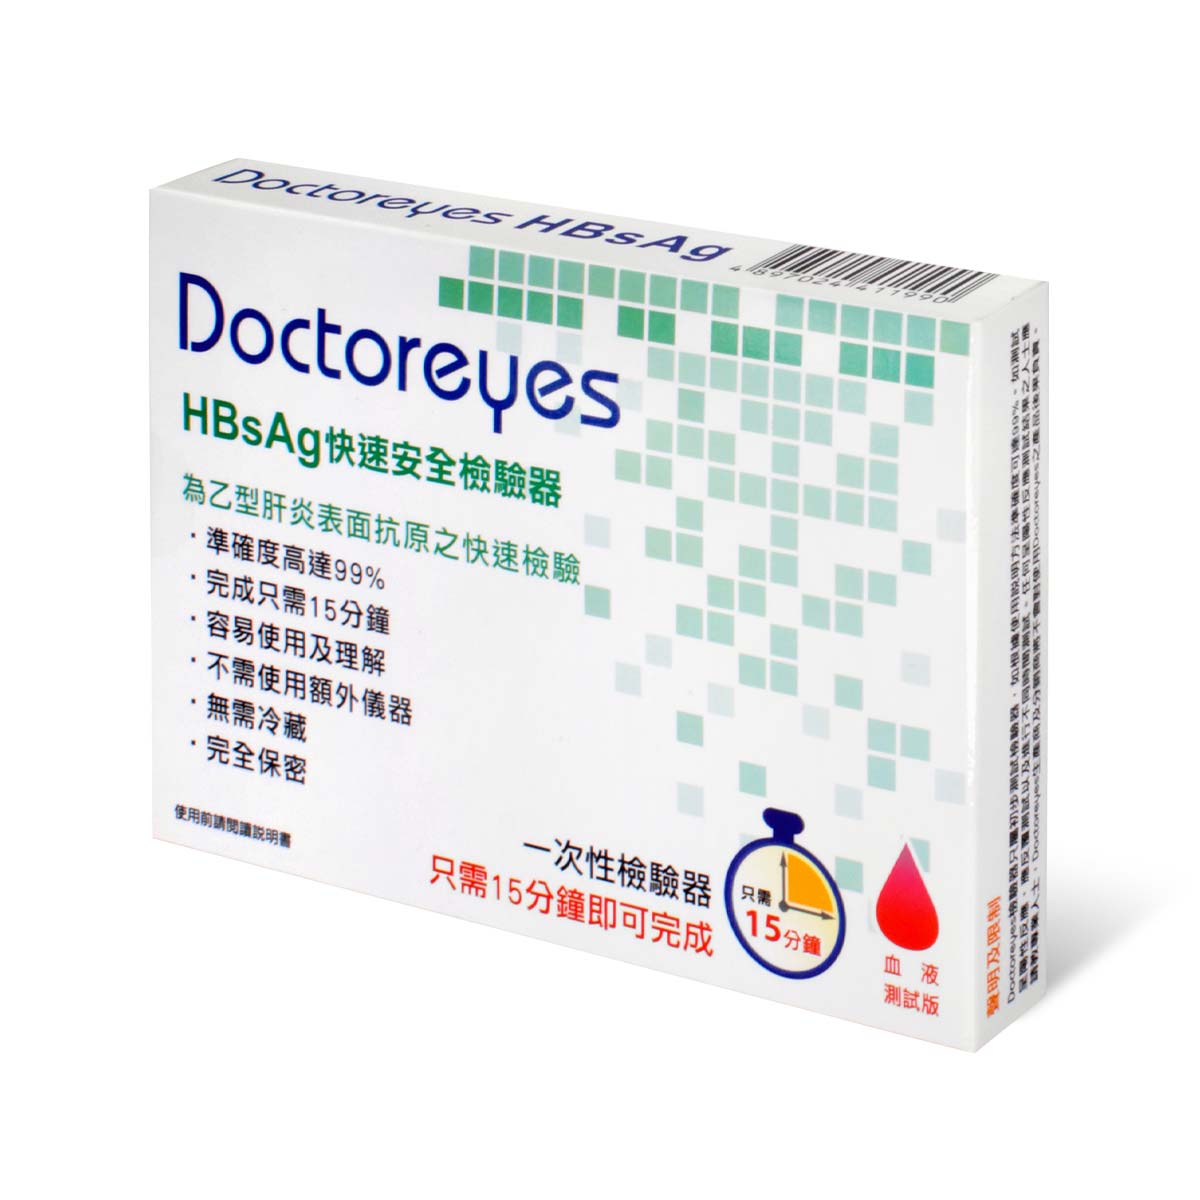 Doctoreyes Hepatitis B (HBsAg) rapid test kit